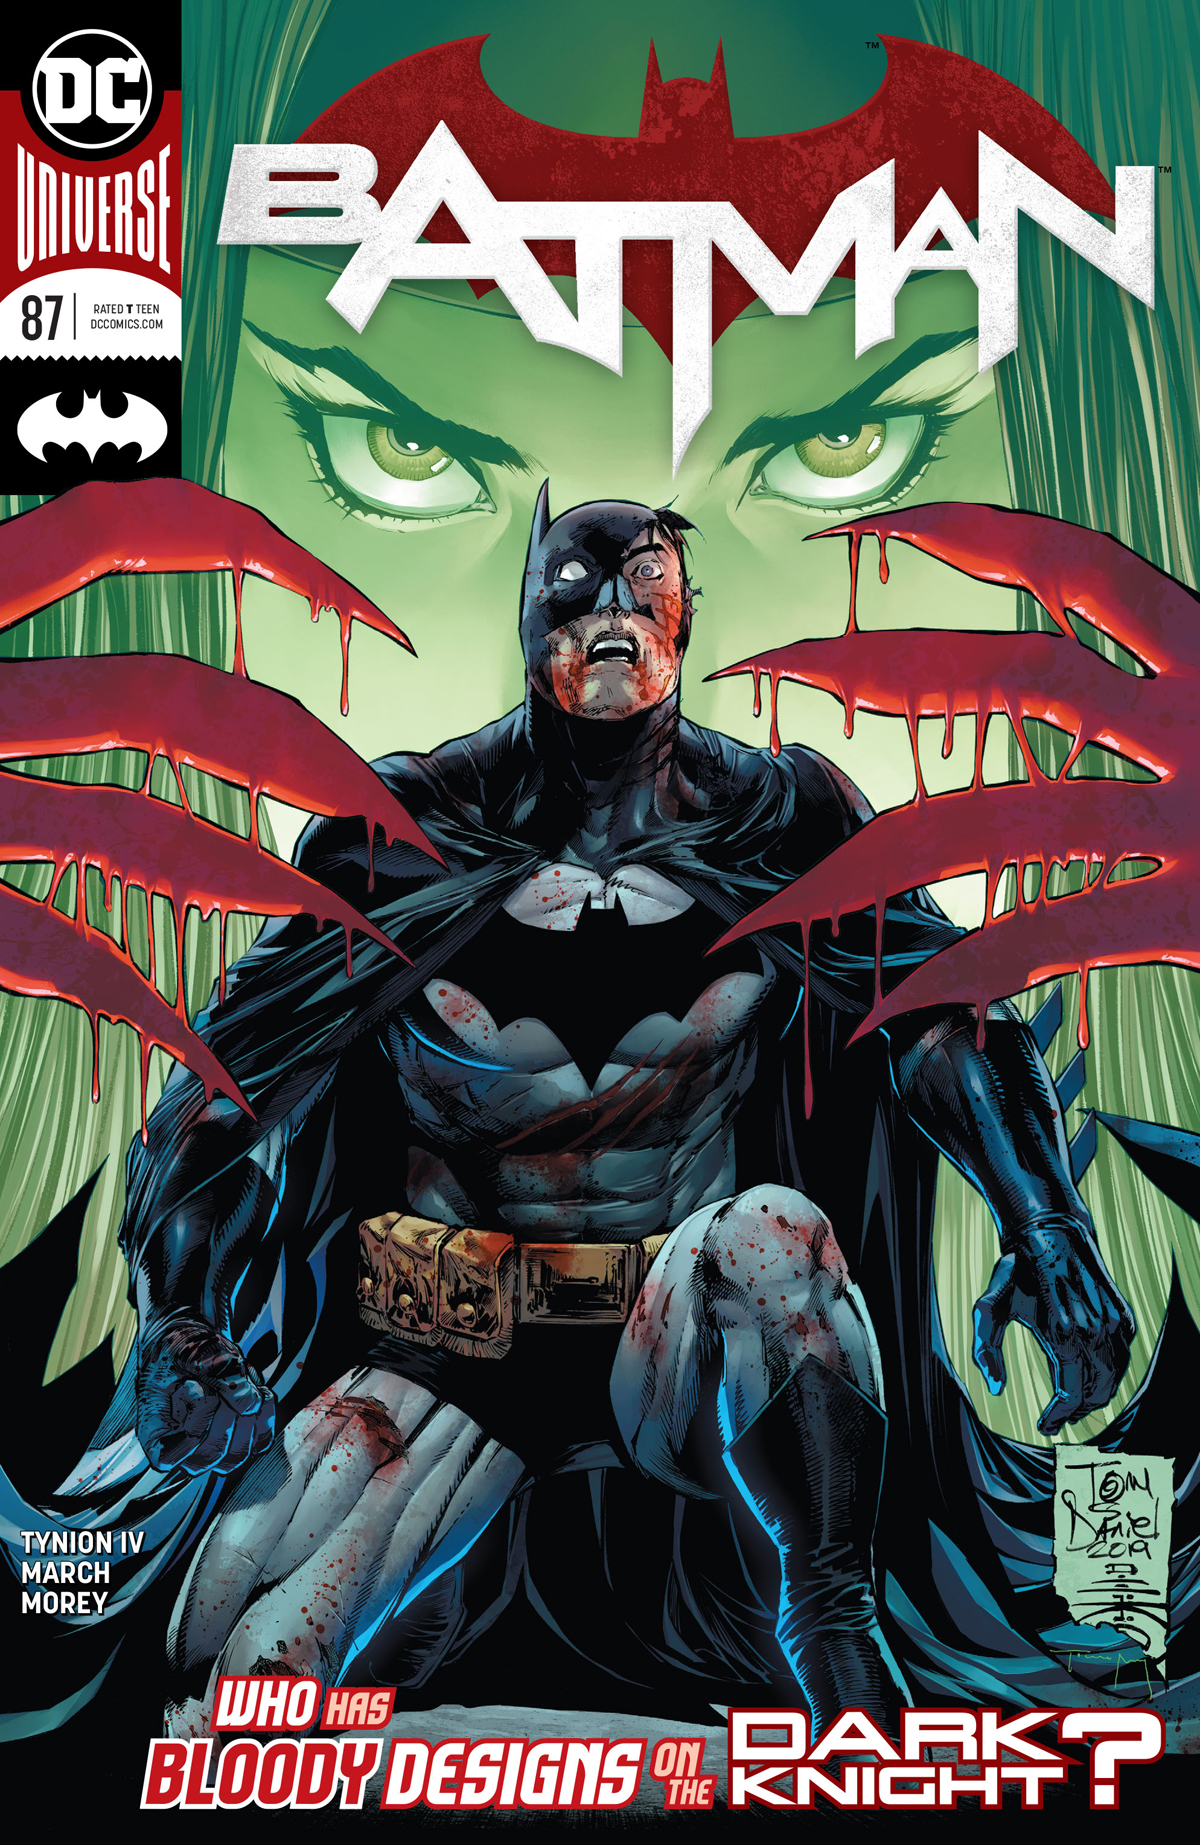 """REVIEW: Batman #87 — """"A Thrill Ride With Breathtaking Moments"""""""